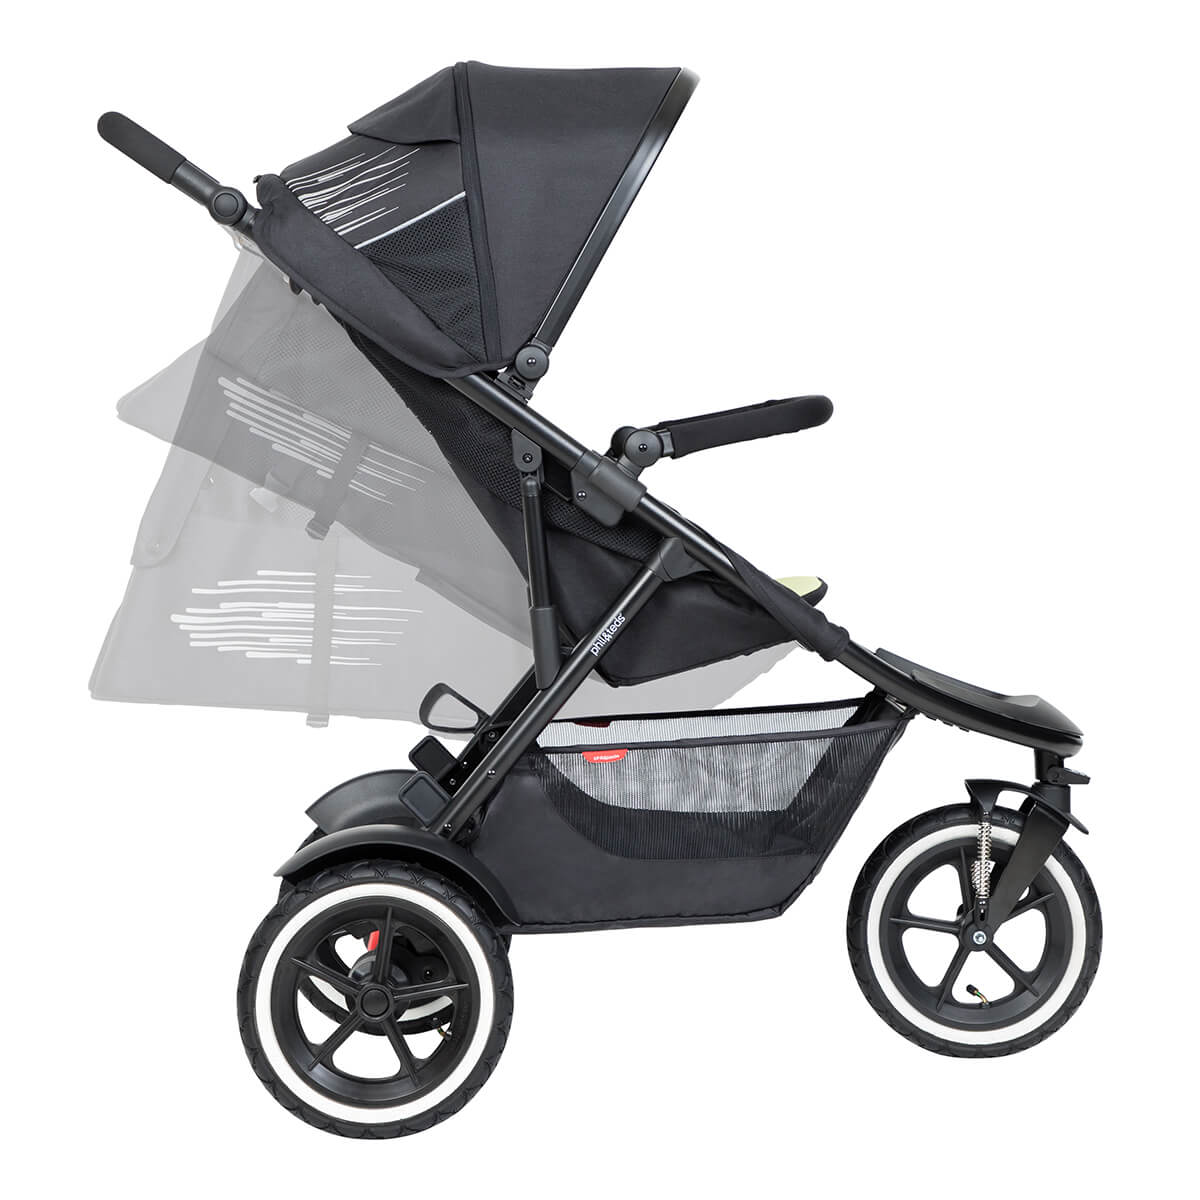 https://cdn.accentuate.io/4509902471245/19466203824322/philteds-sport-buggy-can-recline-in-multiple-angles-including-full-recline-for-newborn-baby-v1626485431604.jpg?1200x1200